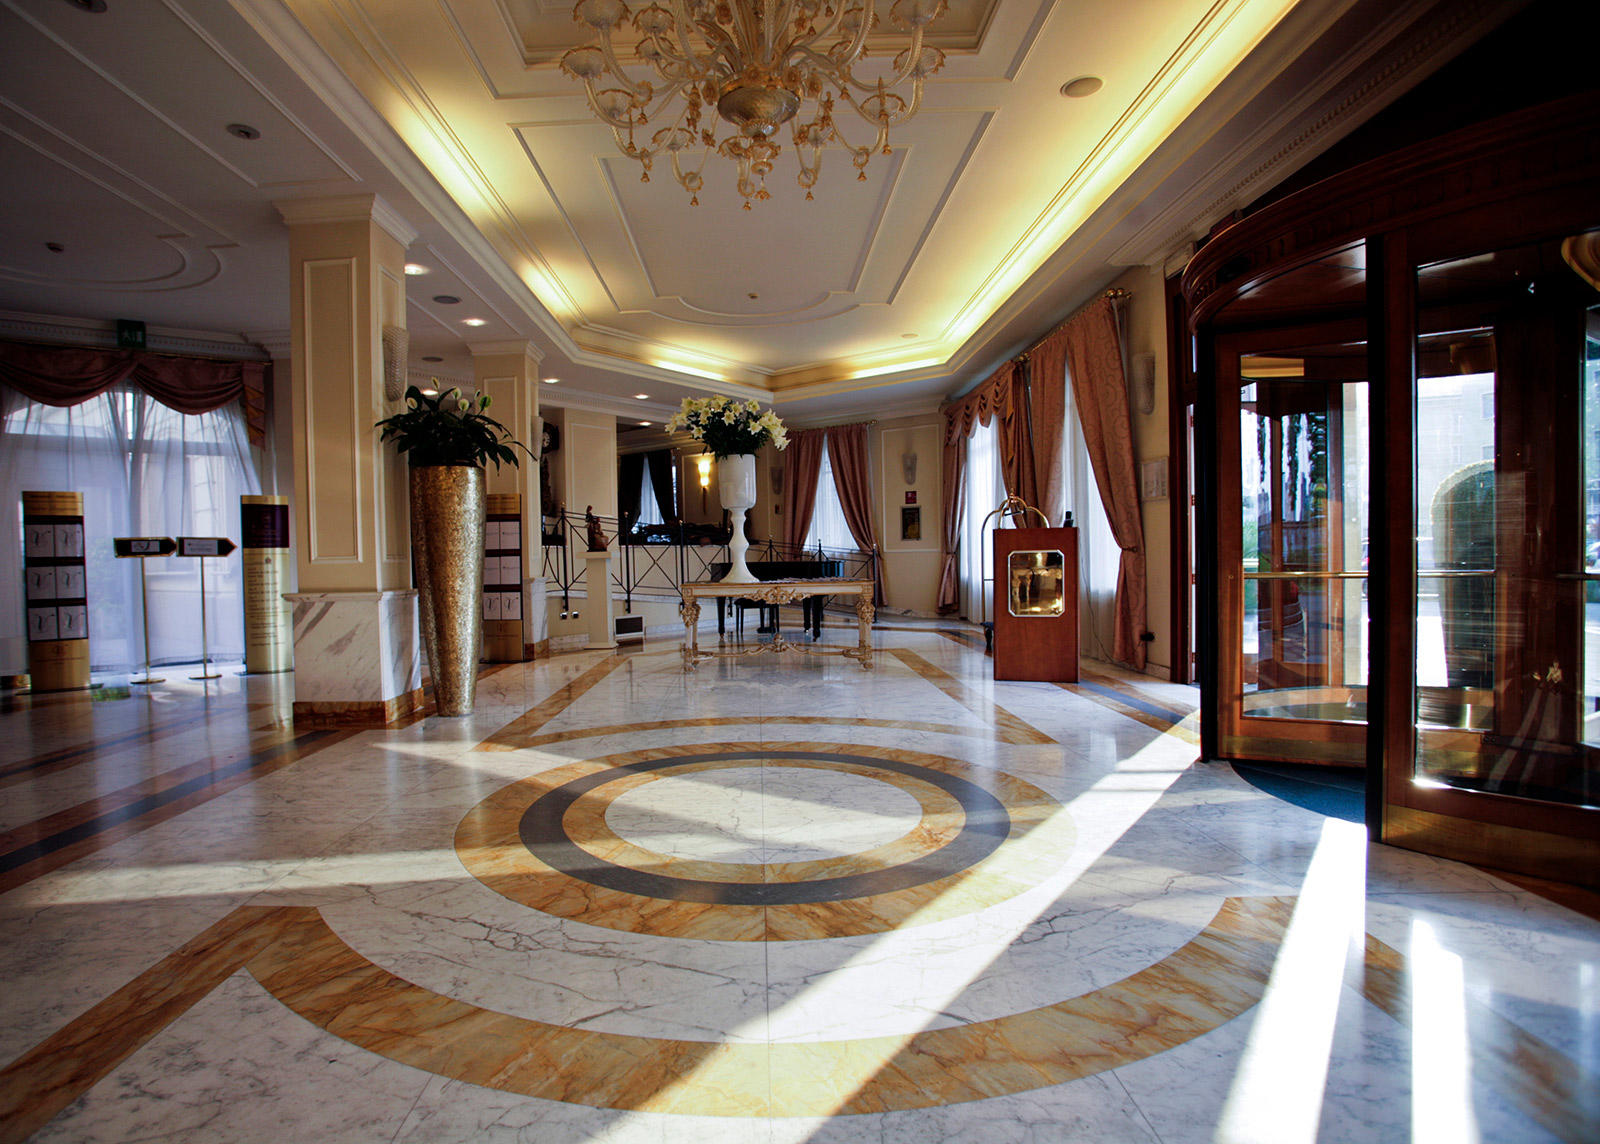 Lobby at Grand Visconti Palace in Milan